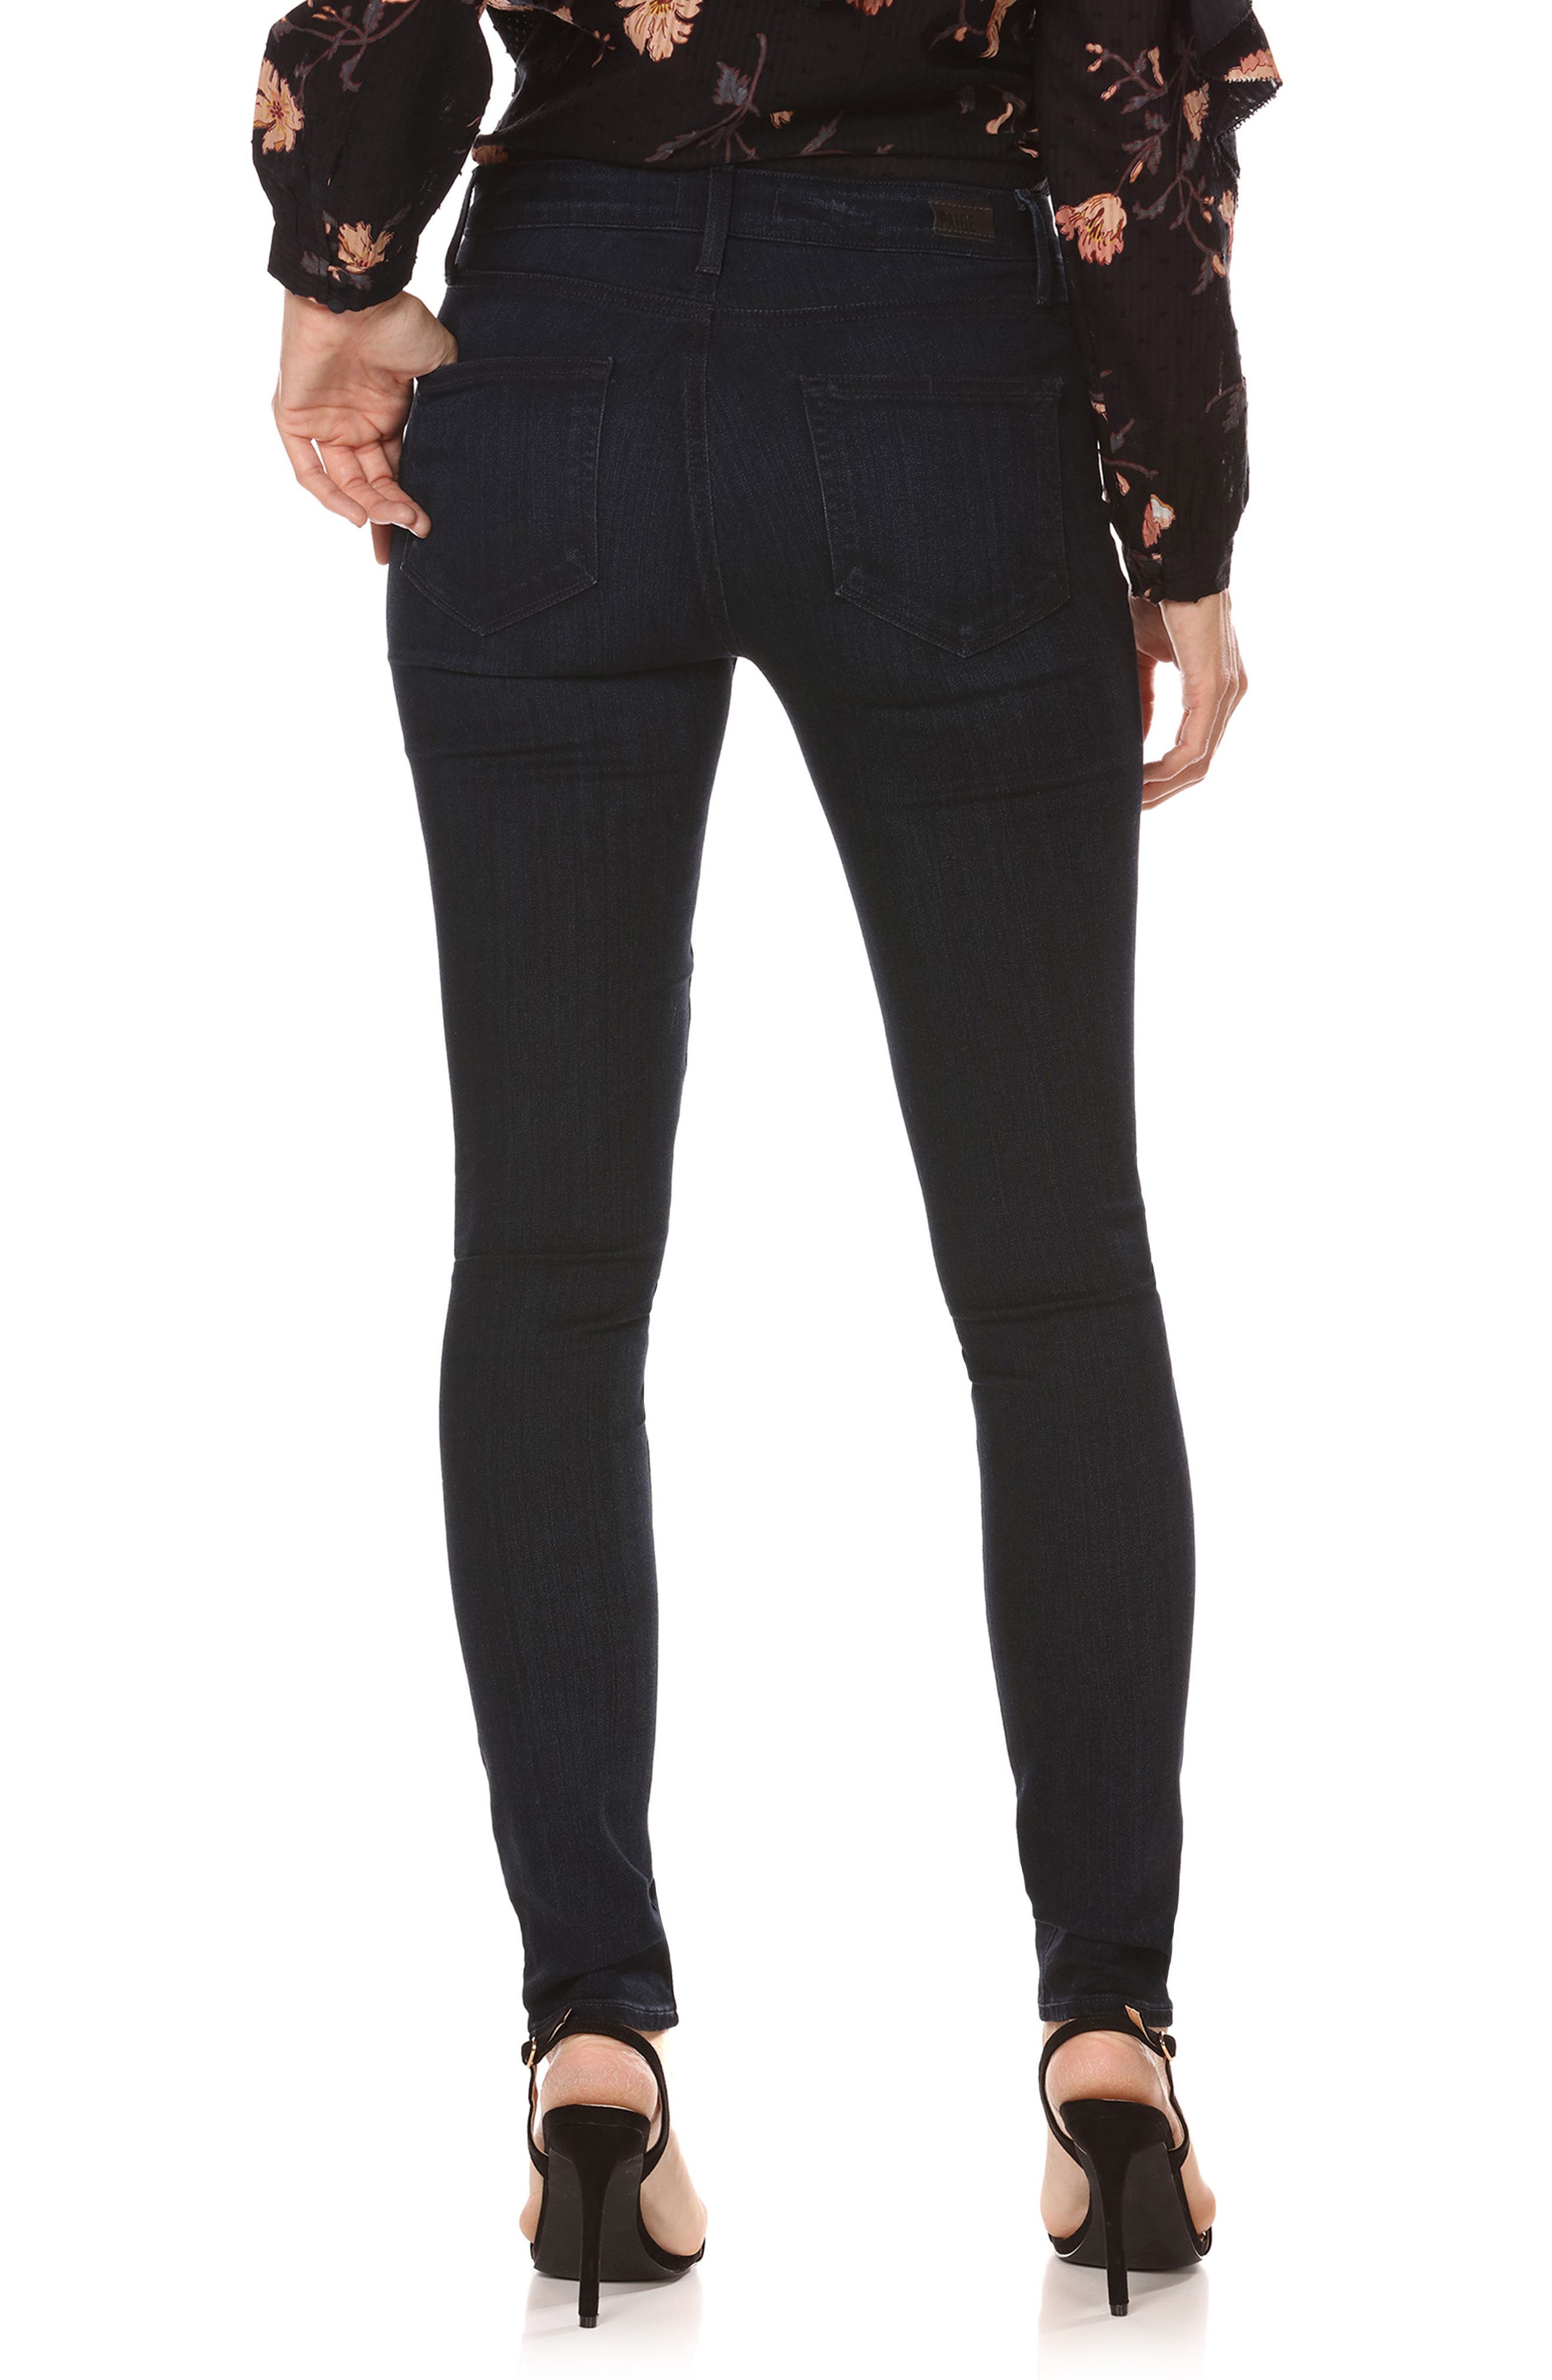 Transcend - Hoxton High Waist Ultra Skinny Jeans,                             Alternate thumbnail 3, color,                             Emryn